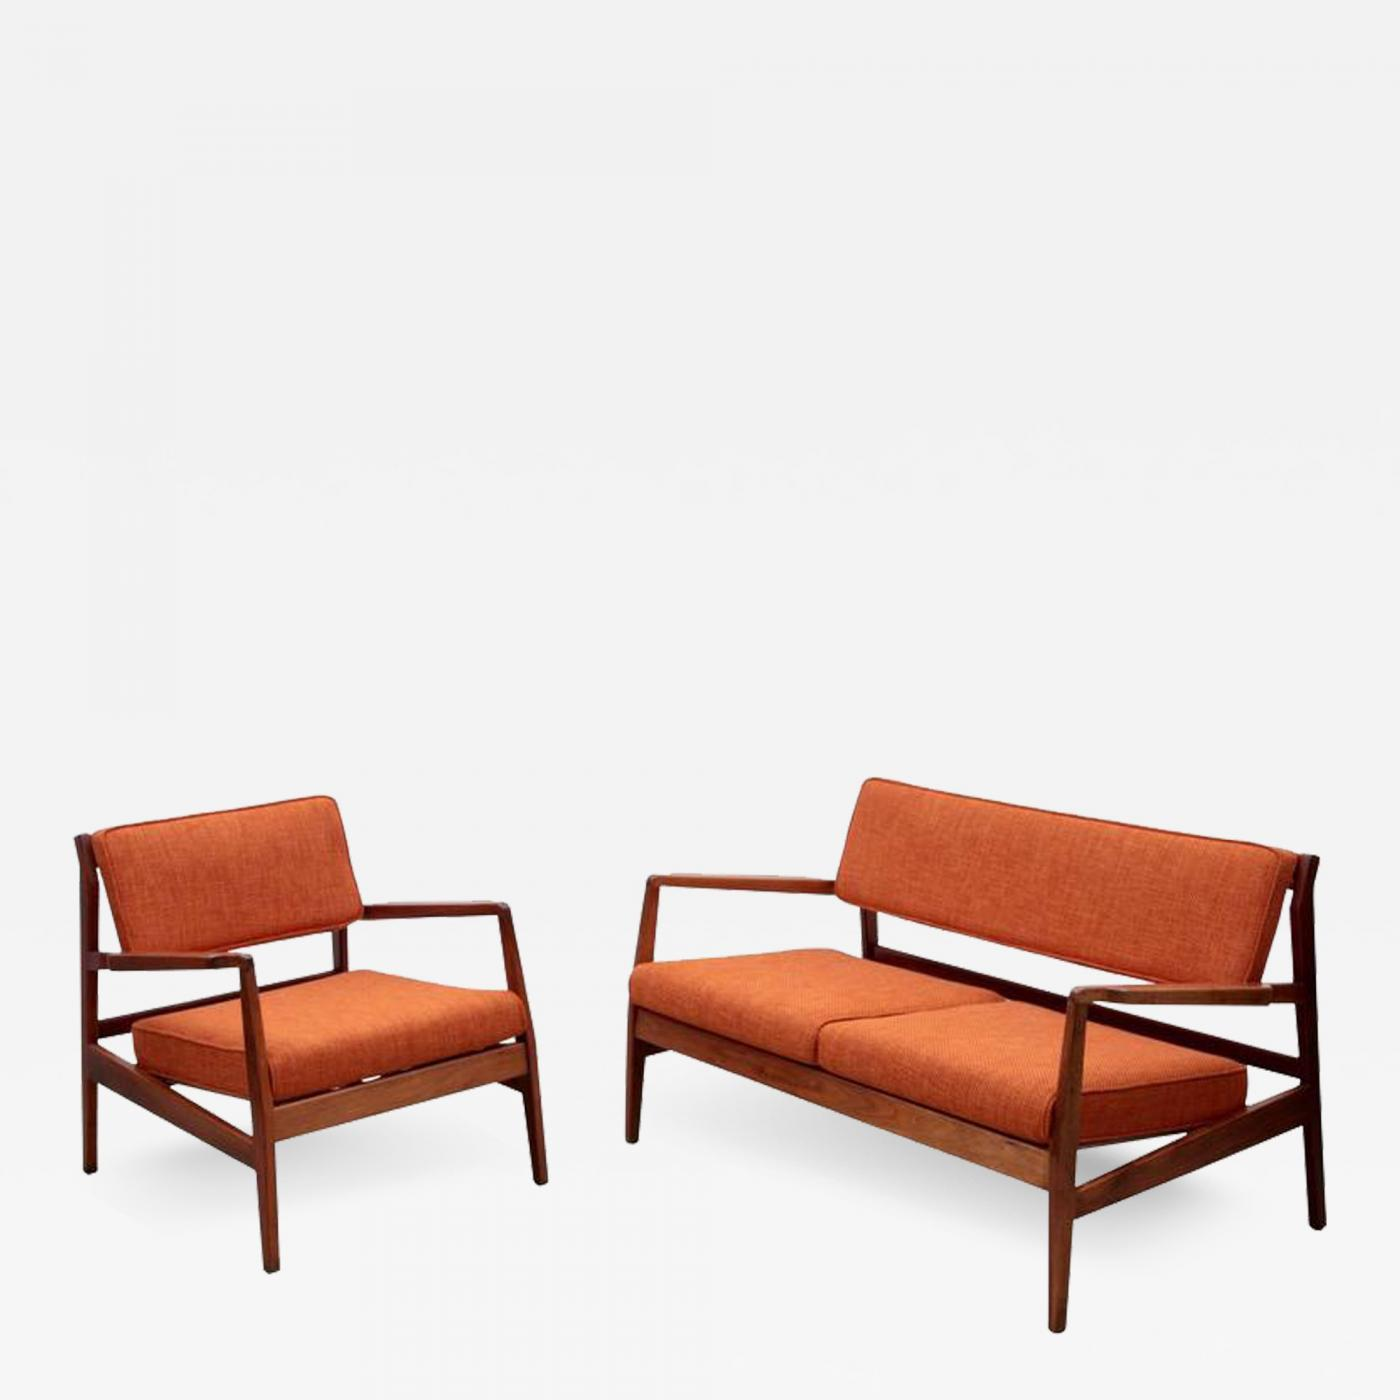 Missoni Fabric Covered Bergere Chair: New Upholstered Jens Risom Sofa Set With